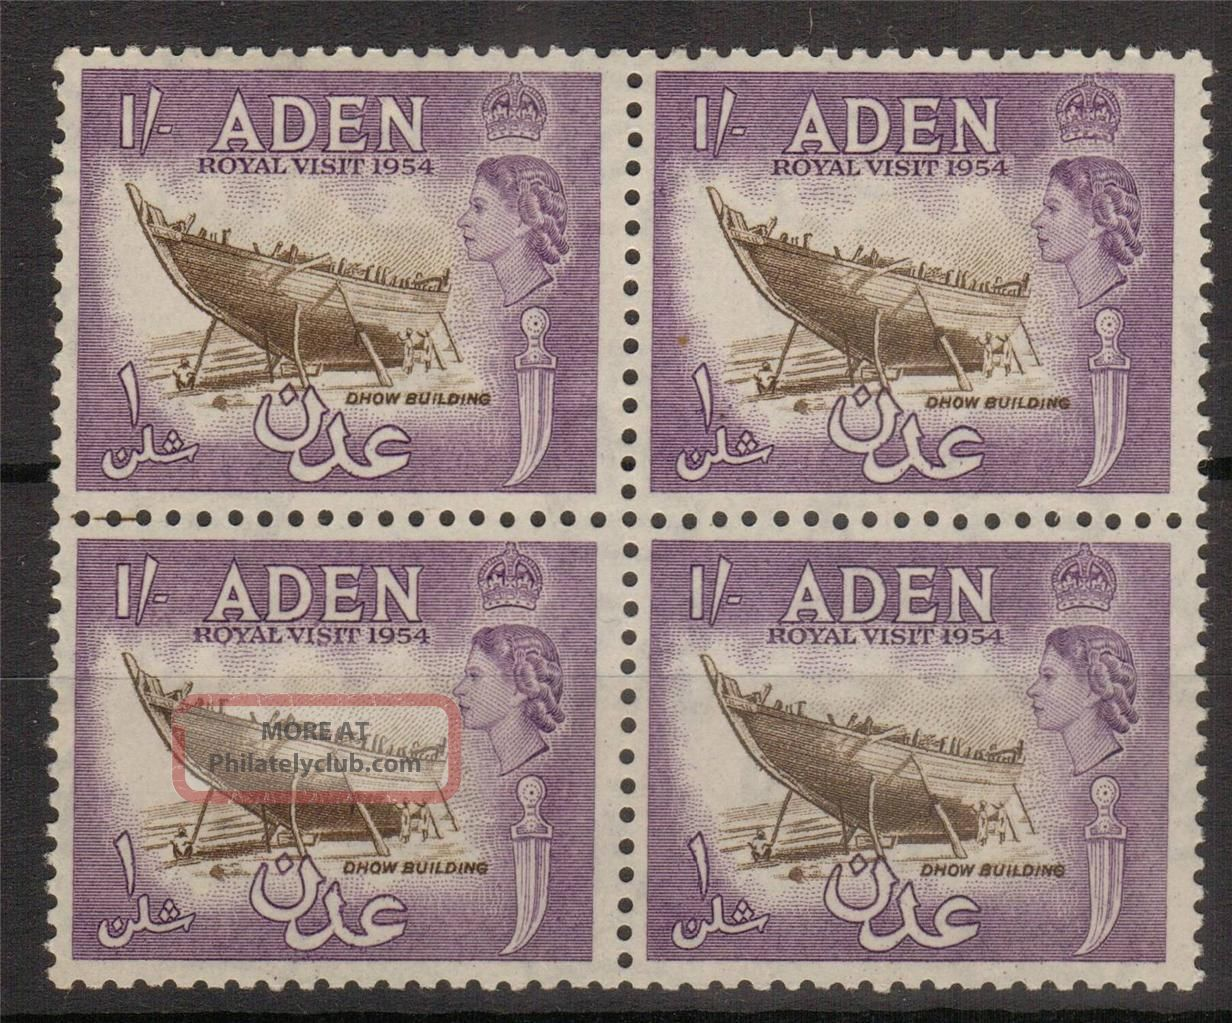 Aden Qeii 1954 Sg73 1/ Shilling Royal Visit Overpint Block 4 A 002 British Colonies & Territories photo